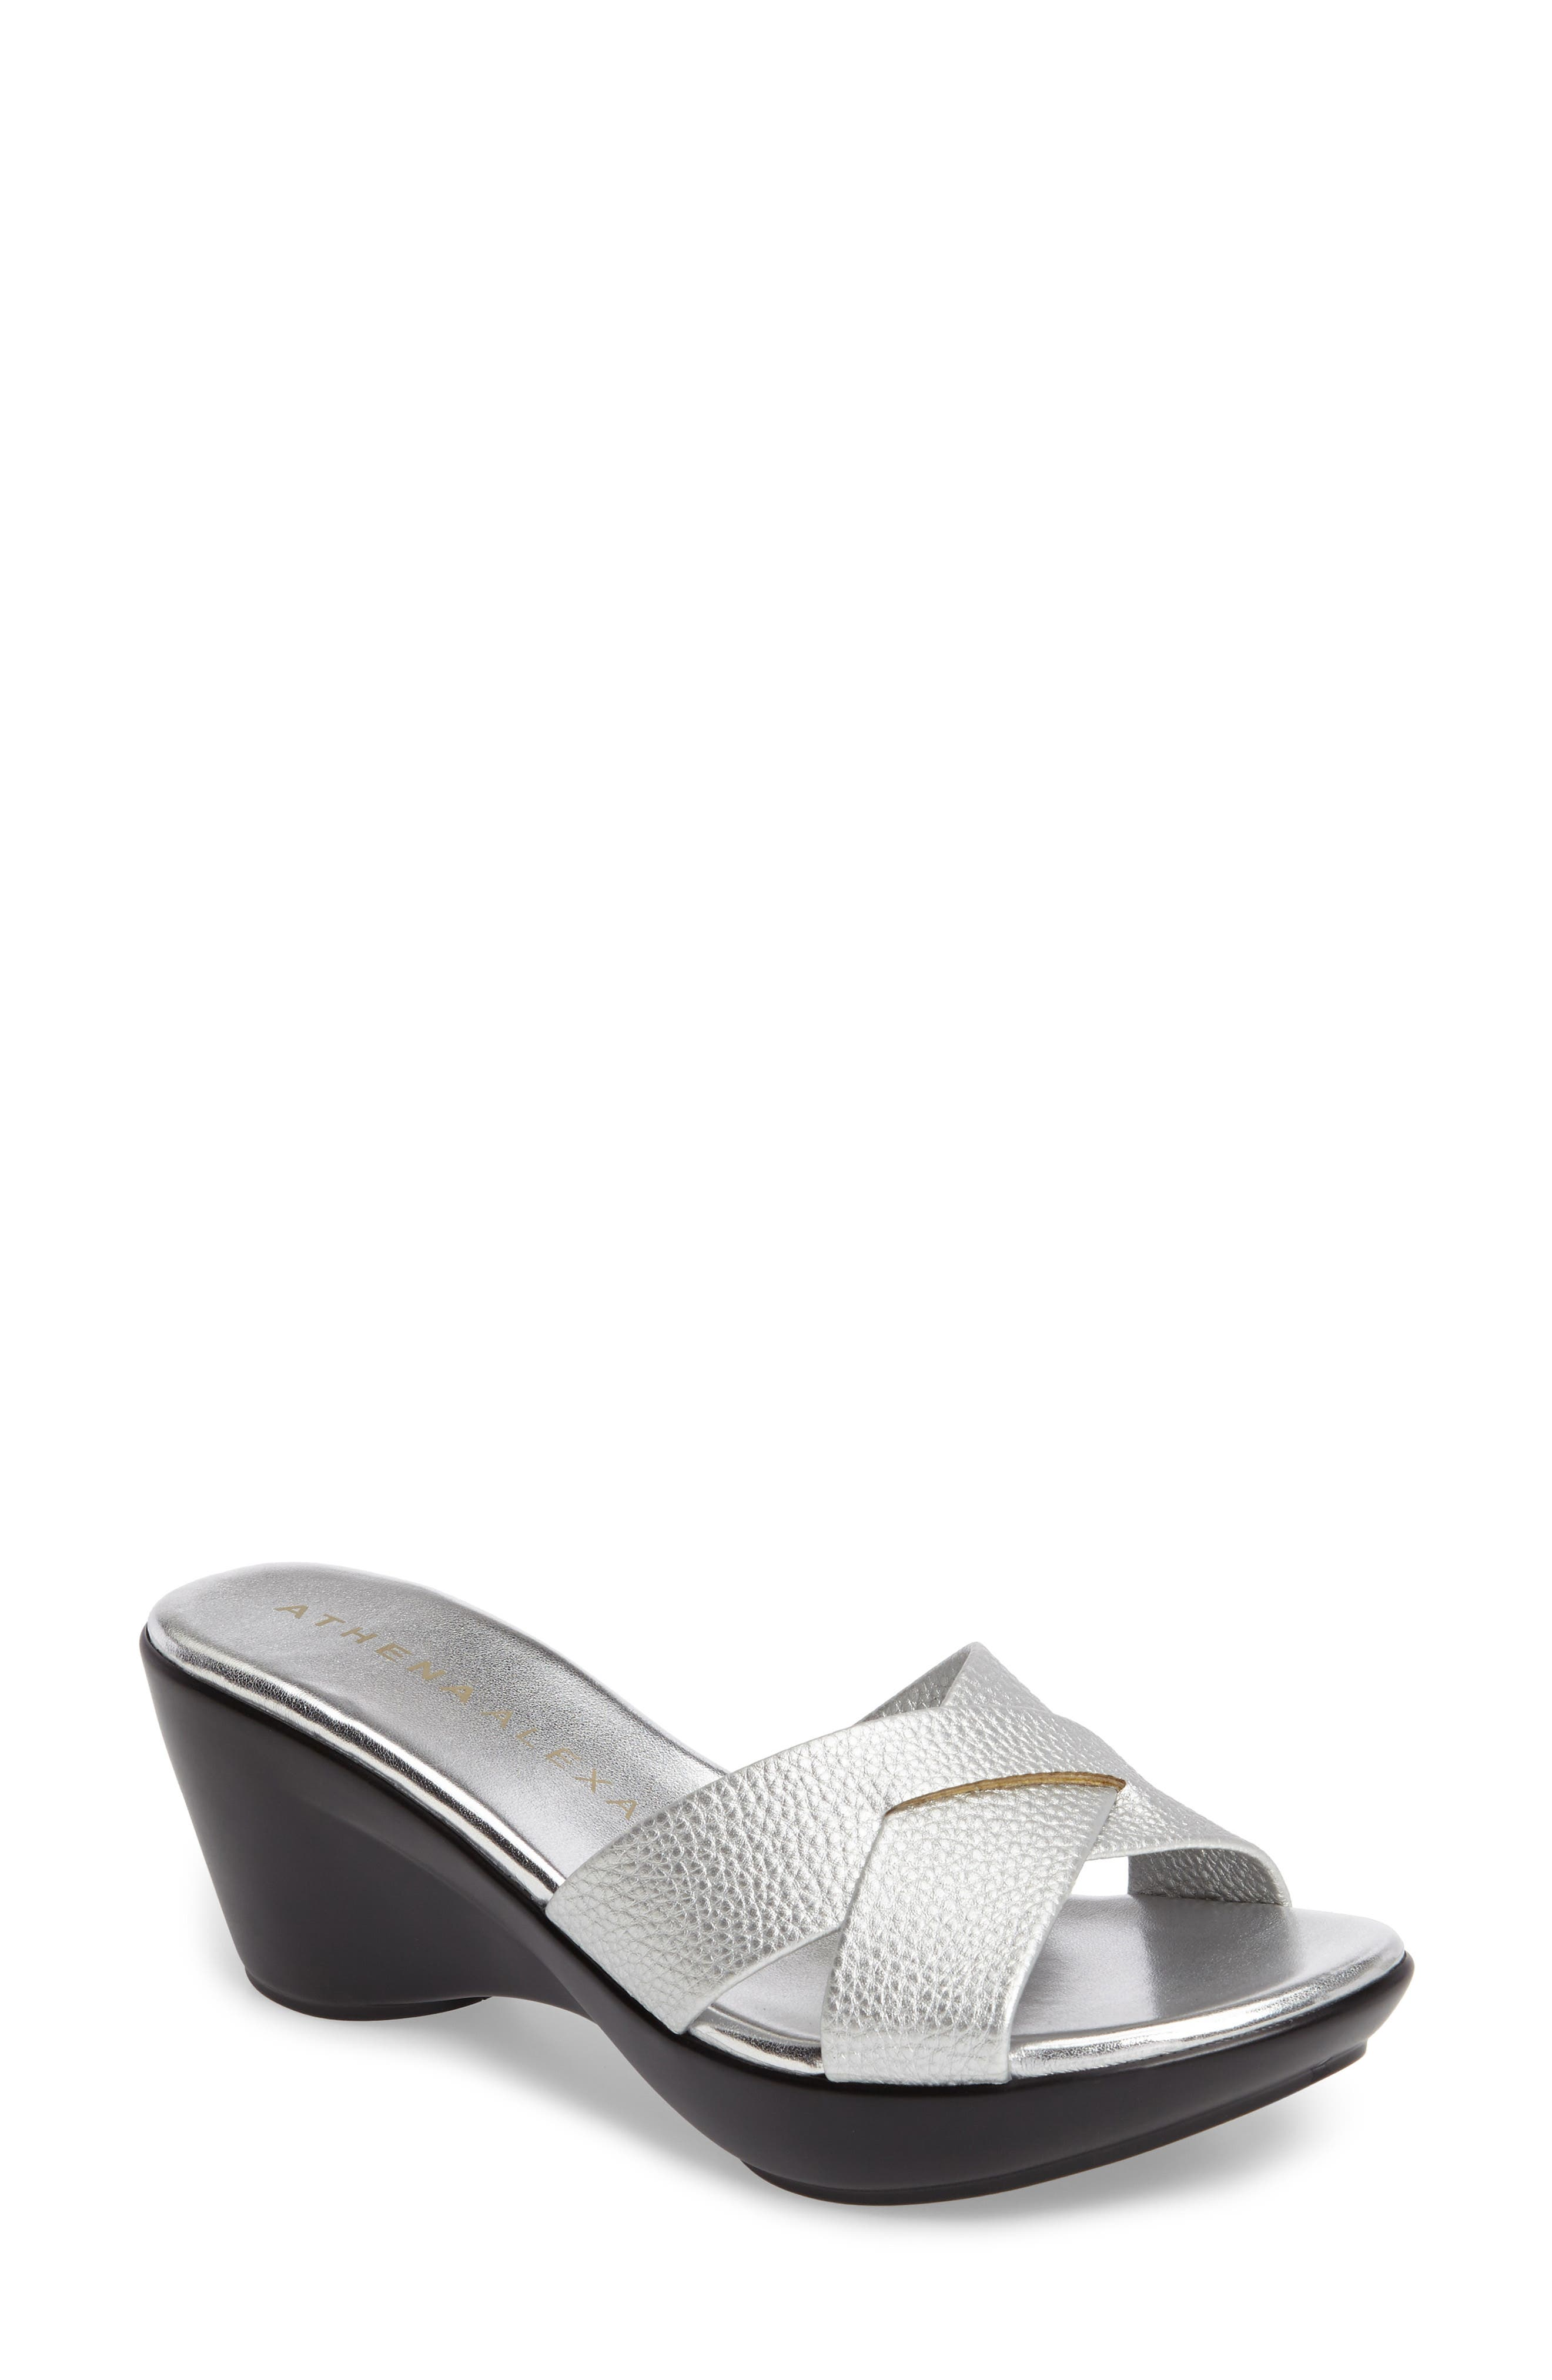 Athena Alexander Verna Wedge Slide (Women)